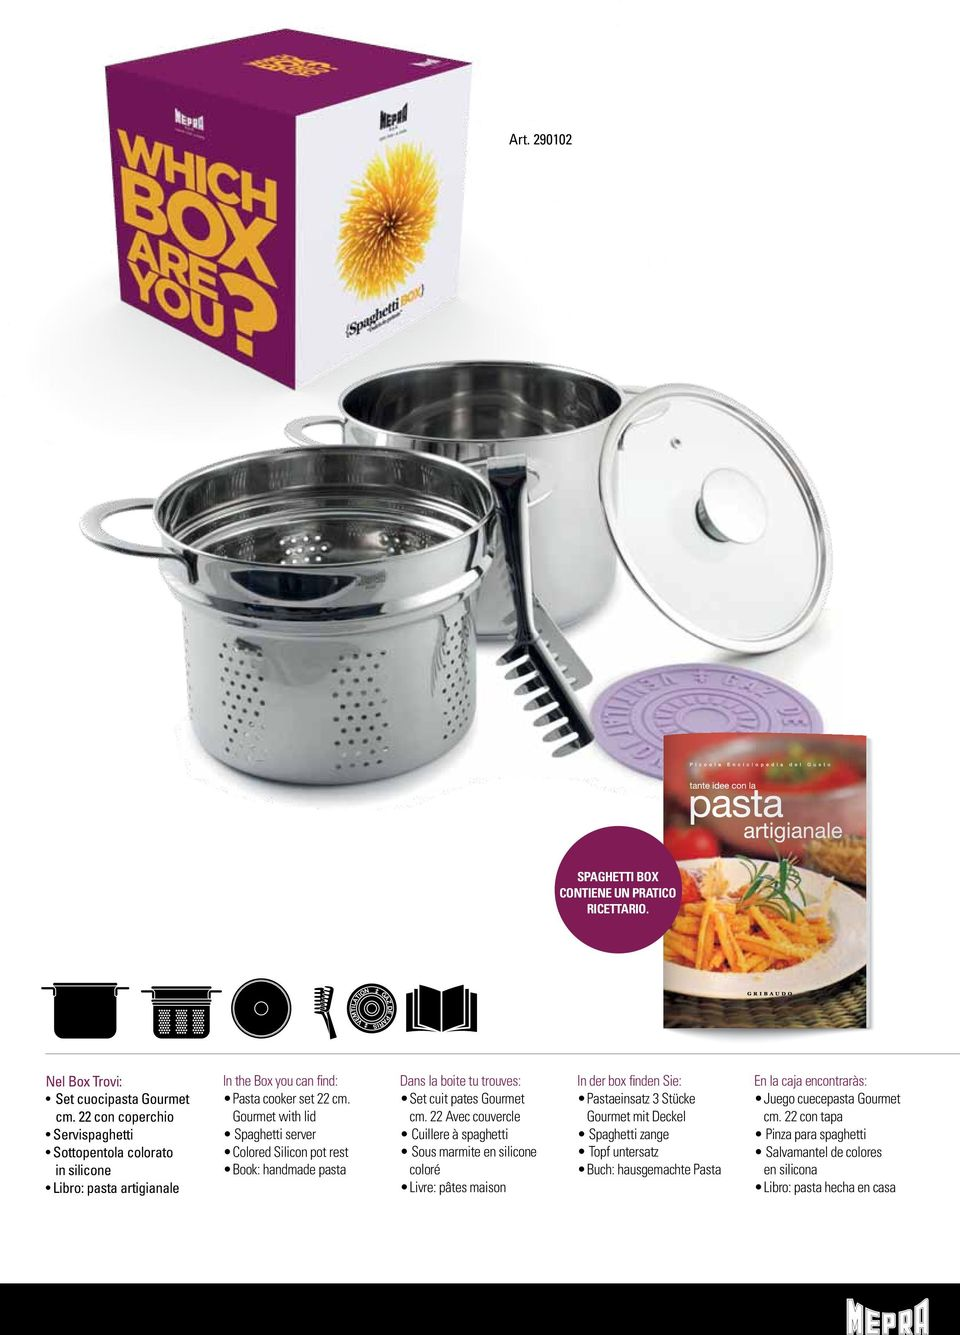 Gourmet with lid Spaghetti server Colored Silicon pot rest Book: handmade pasta Dans la boite tu trouves: Set cuit pates Gourmet cm.